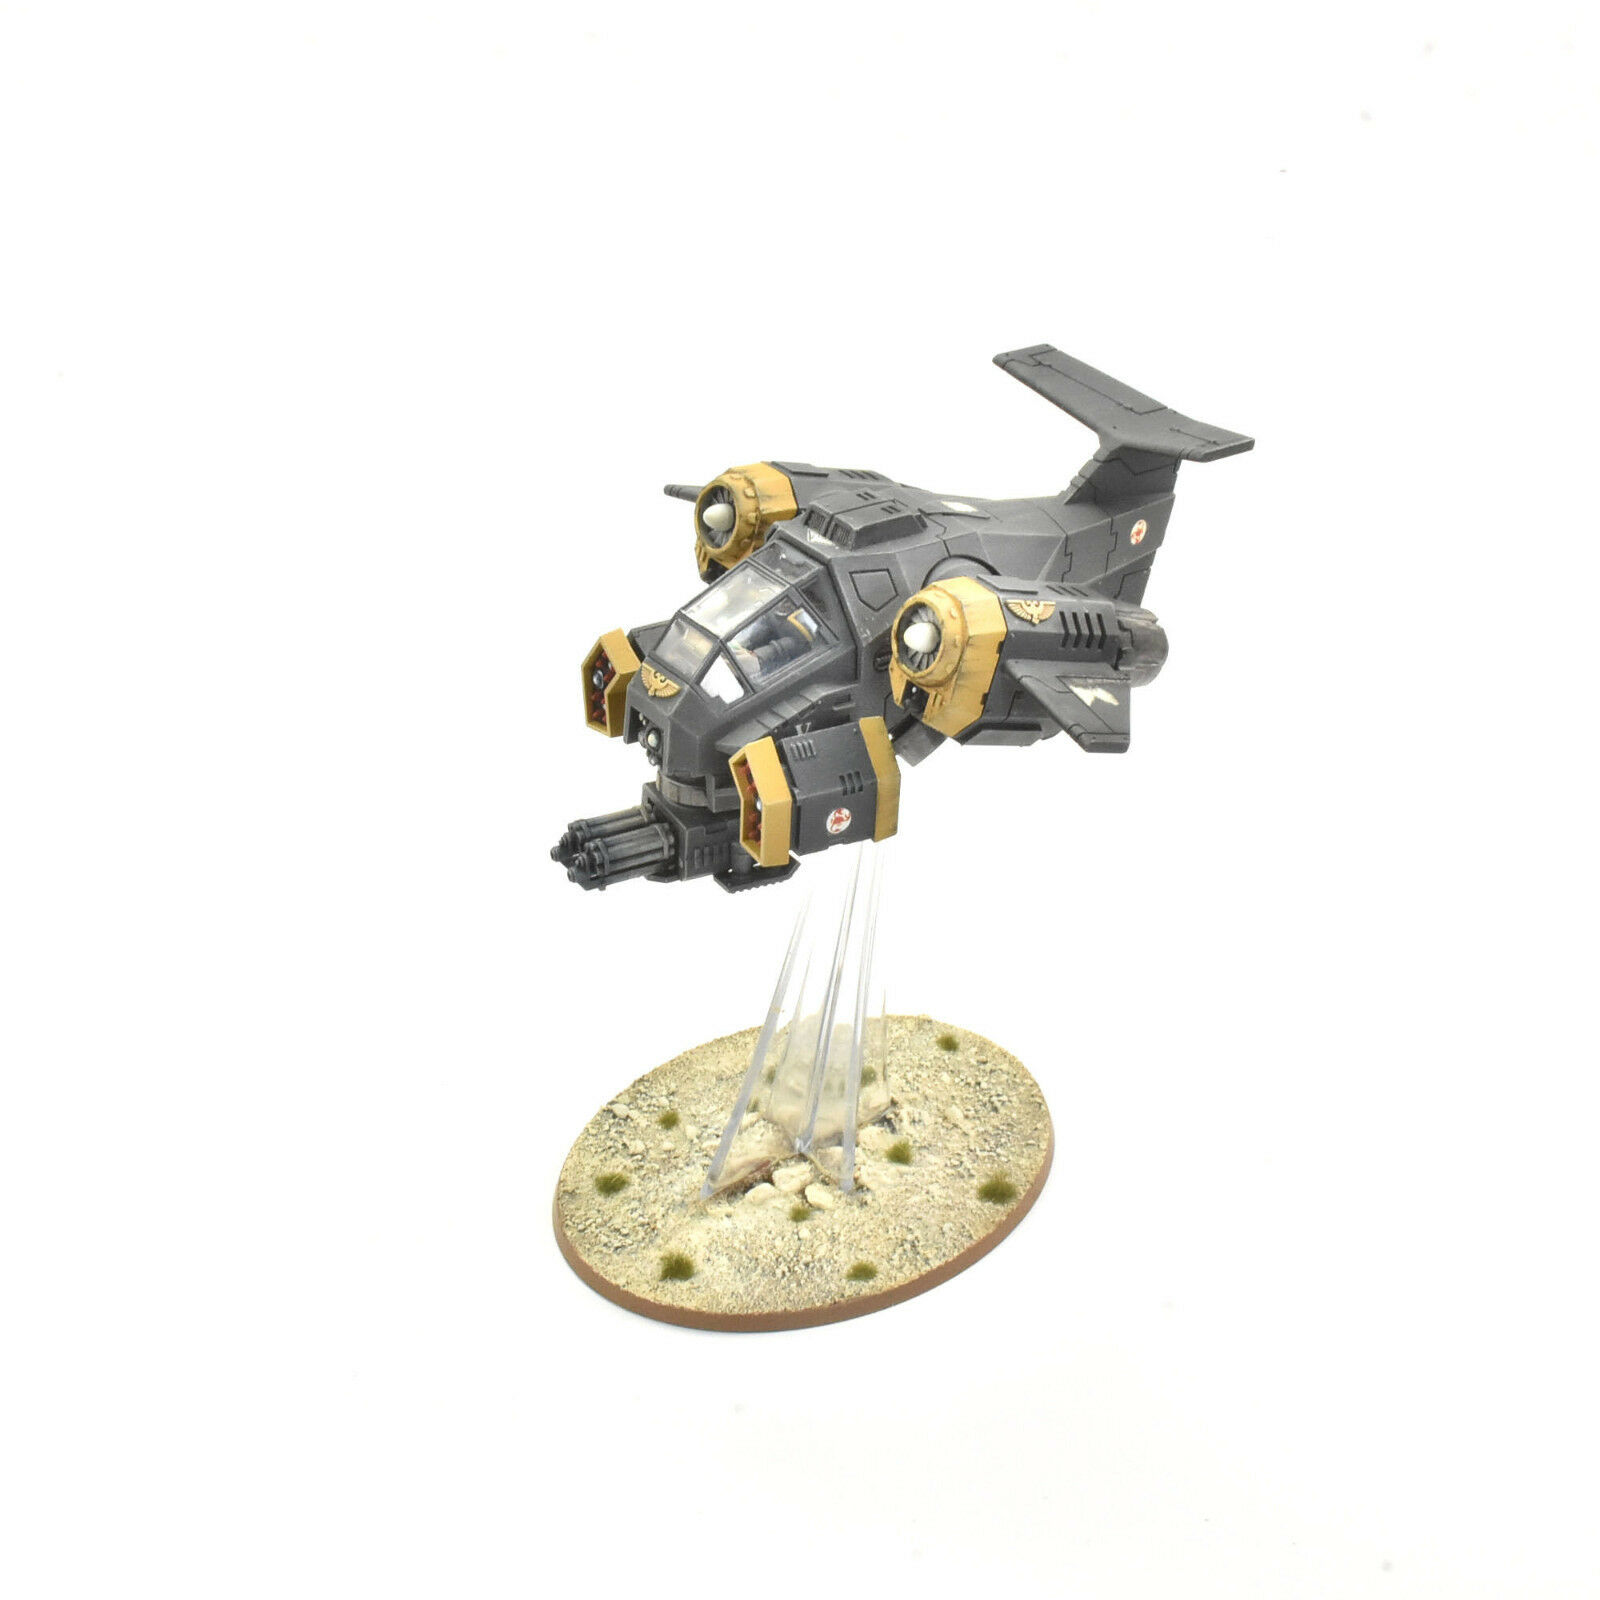 SPACE MARINES Stormtalon gunship congreened PRO PAINTED 40K Red Scorpions army